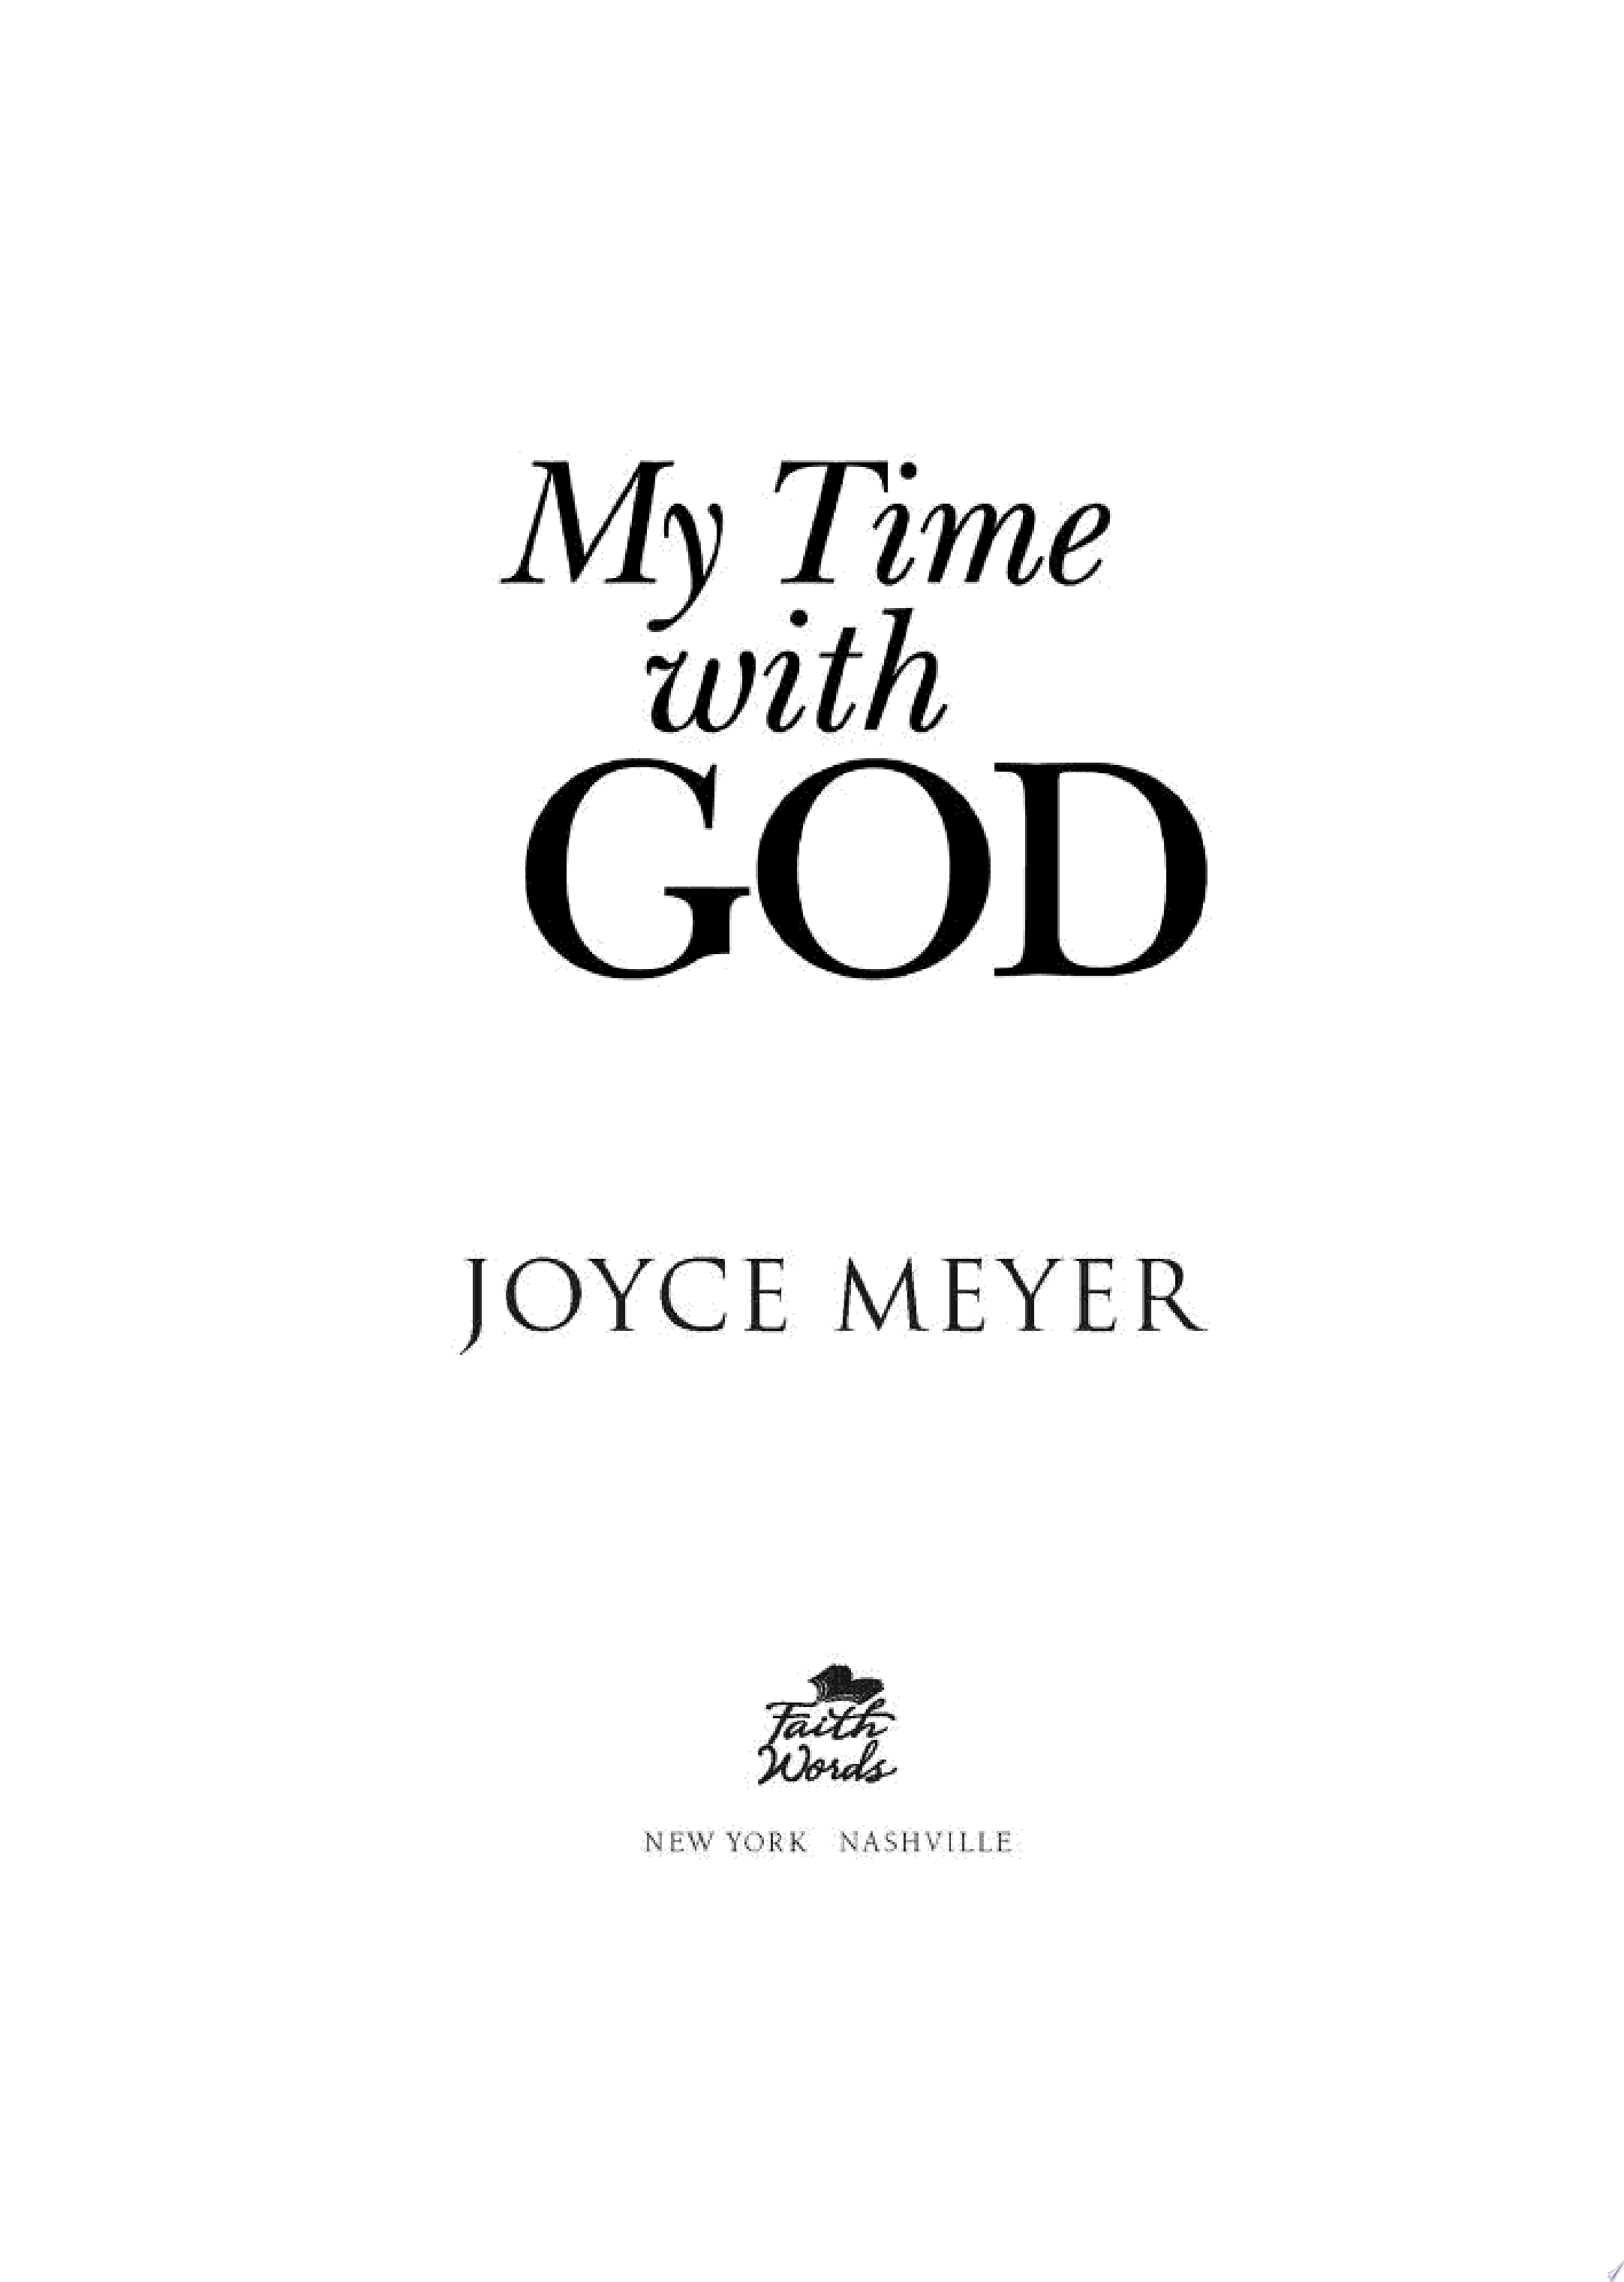 My Time with God